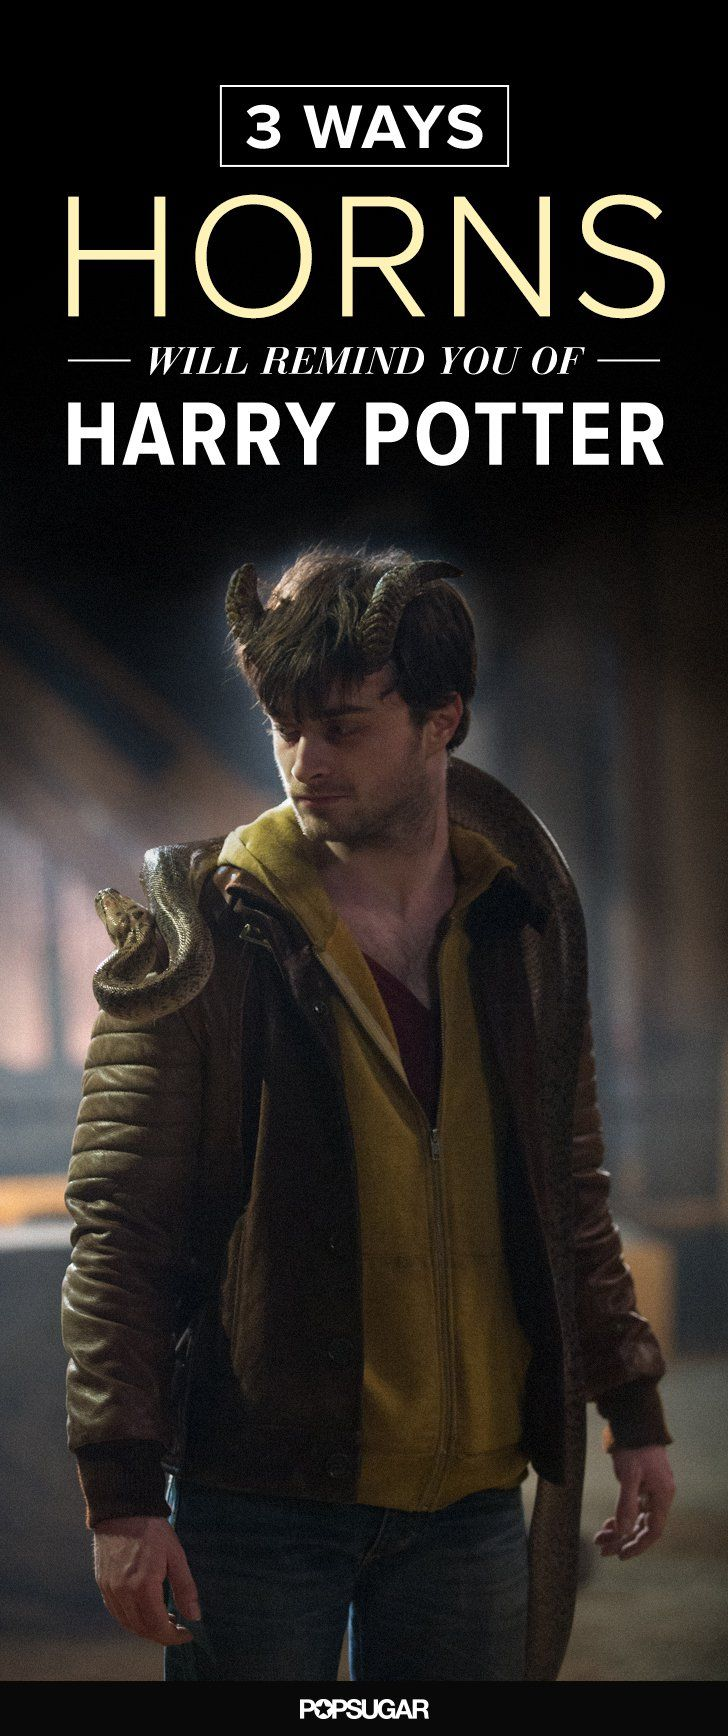 Pin for Later: 3 Ways Daniel Radcliffe's New Movie Will Remind You of Harry Potter